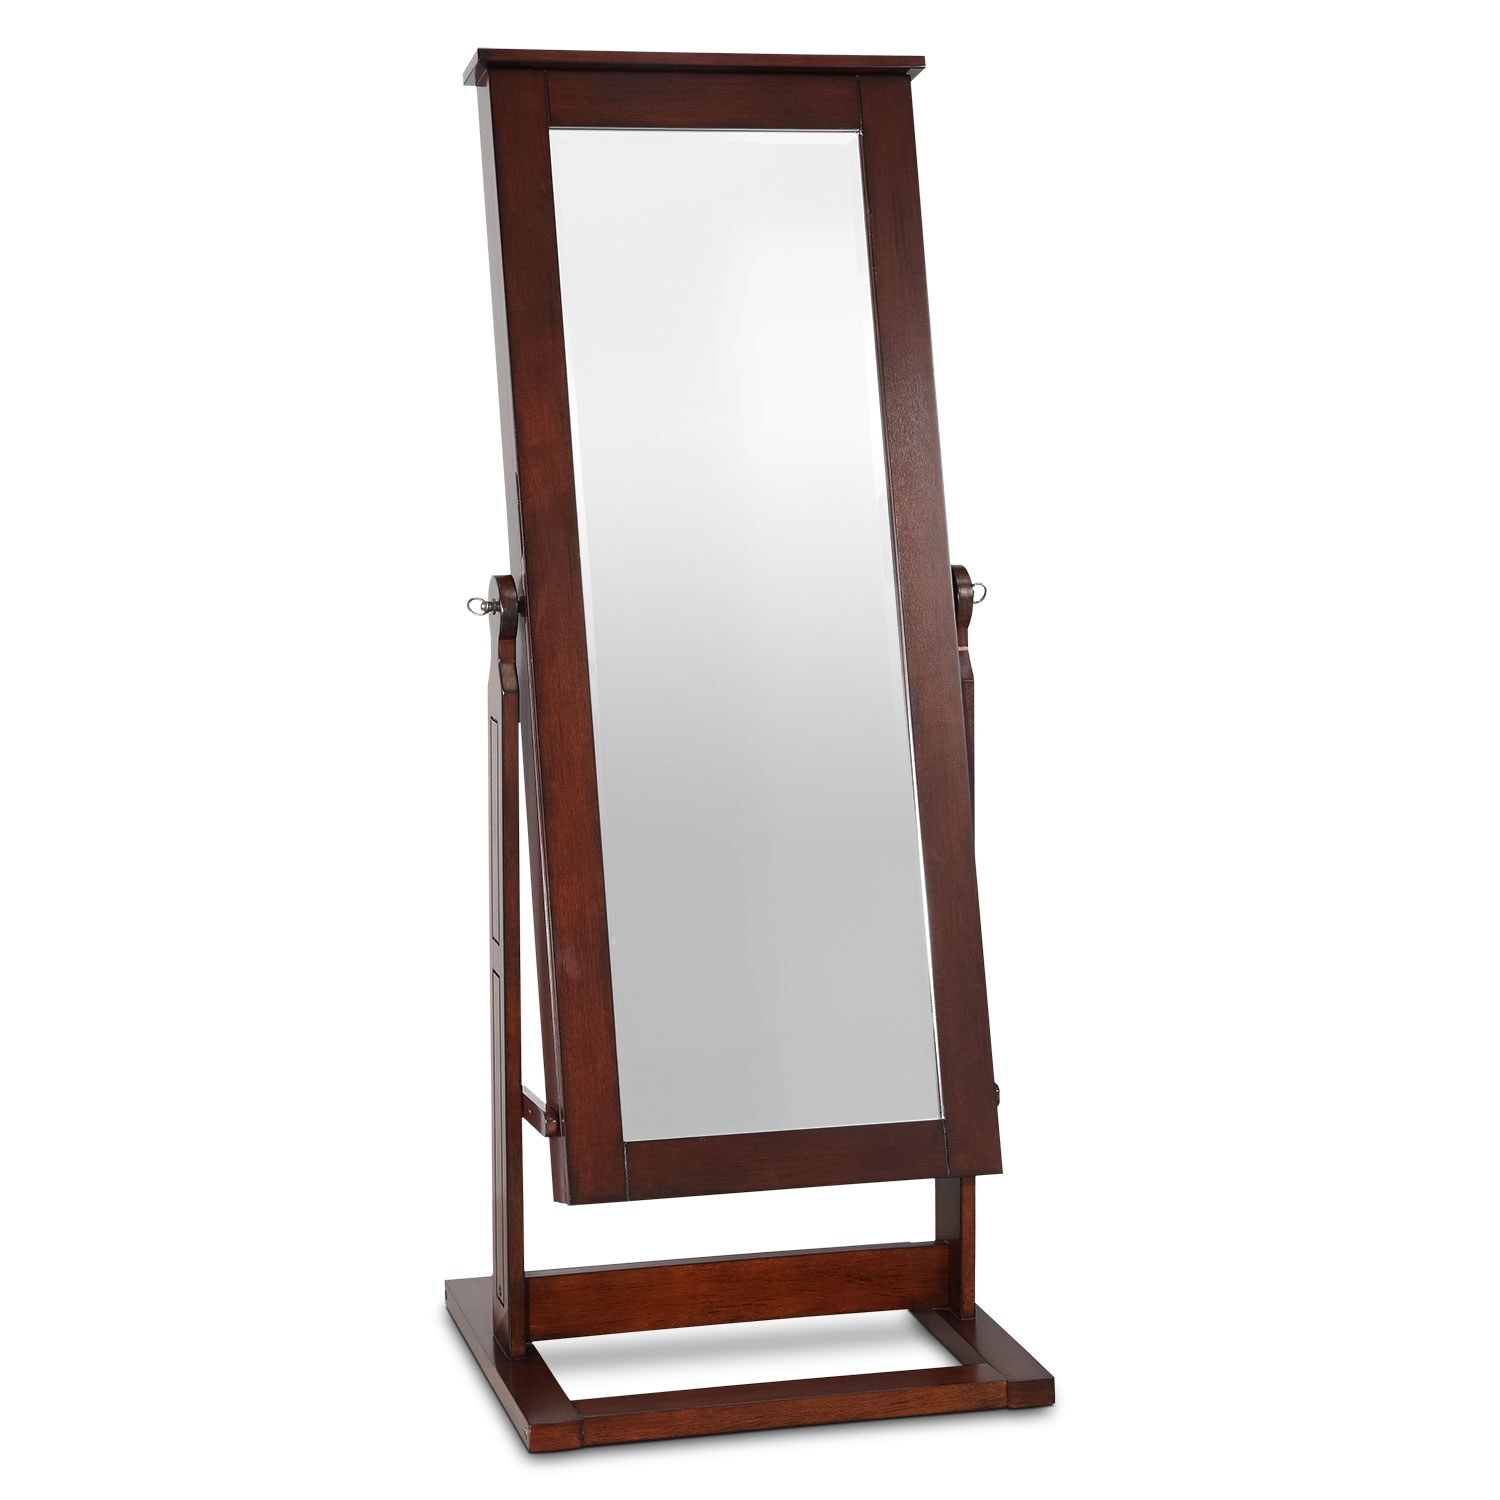 Perrie Cheval Storage Mirror - Walnut